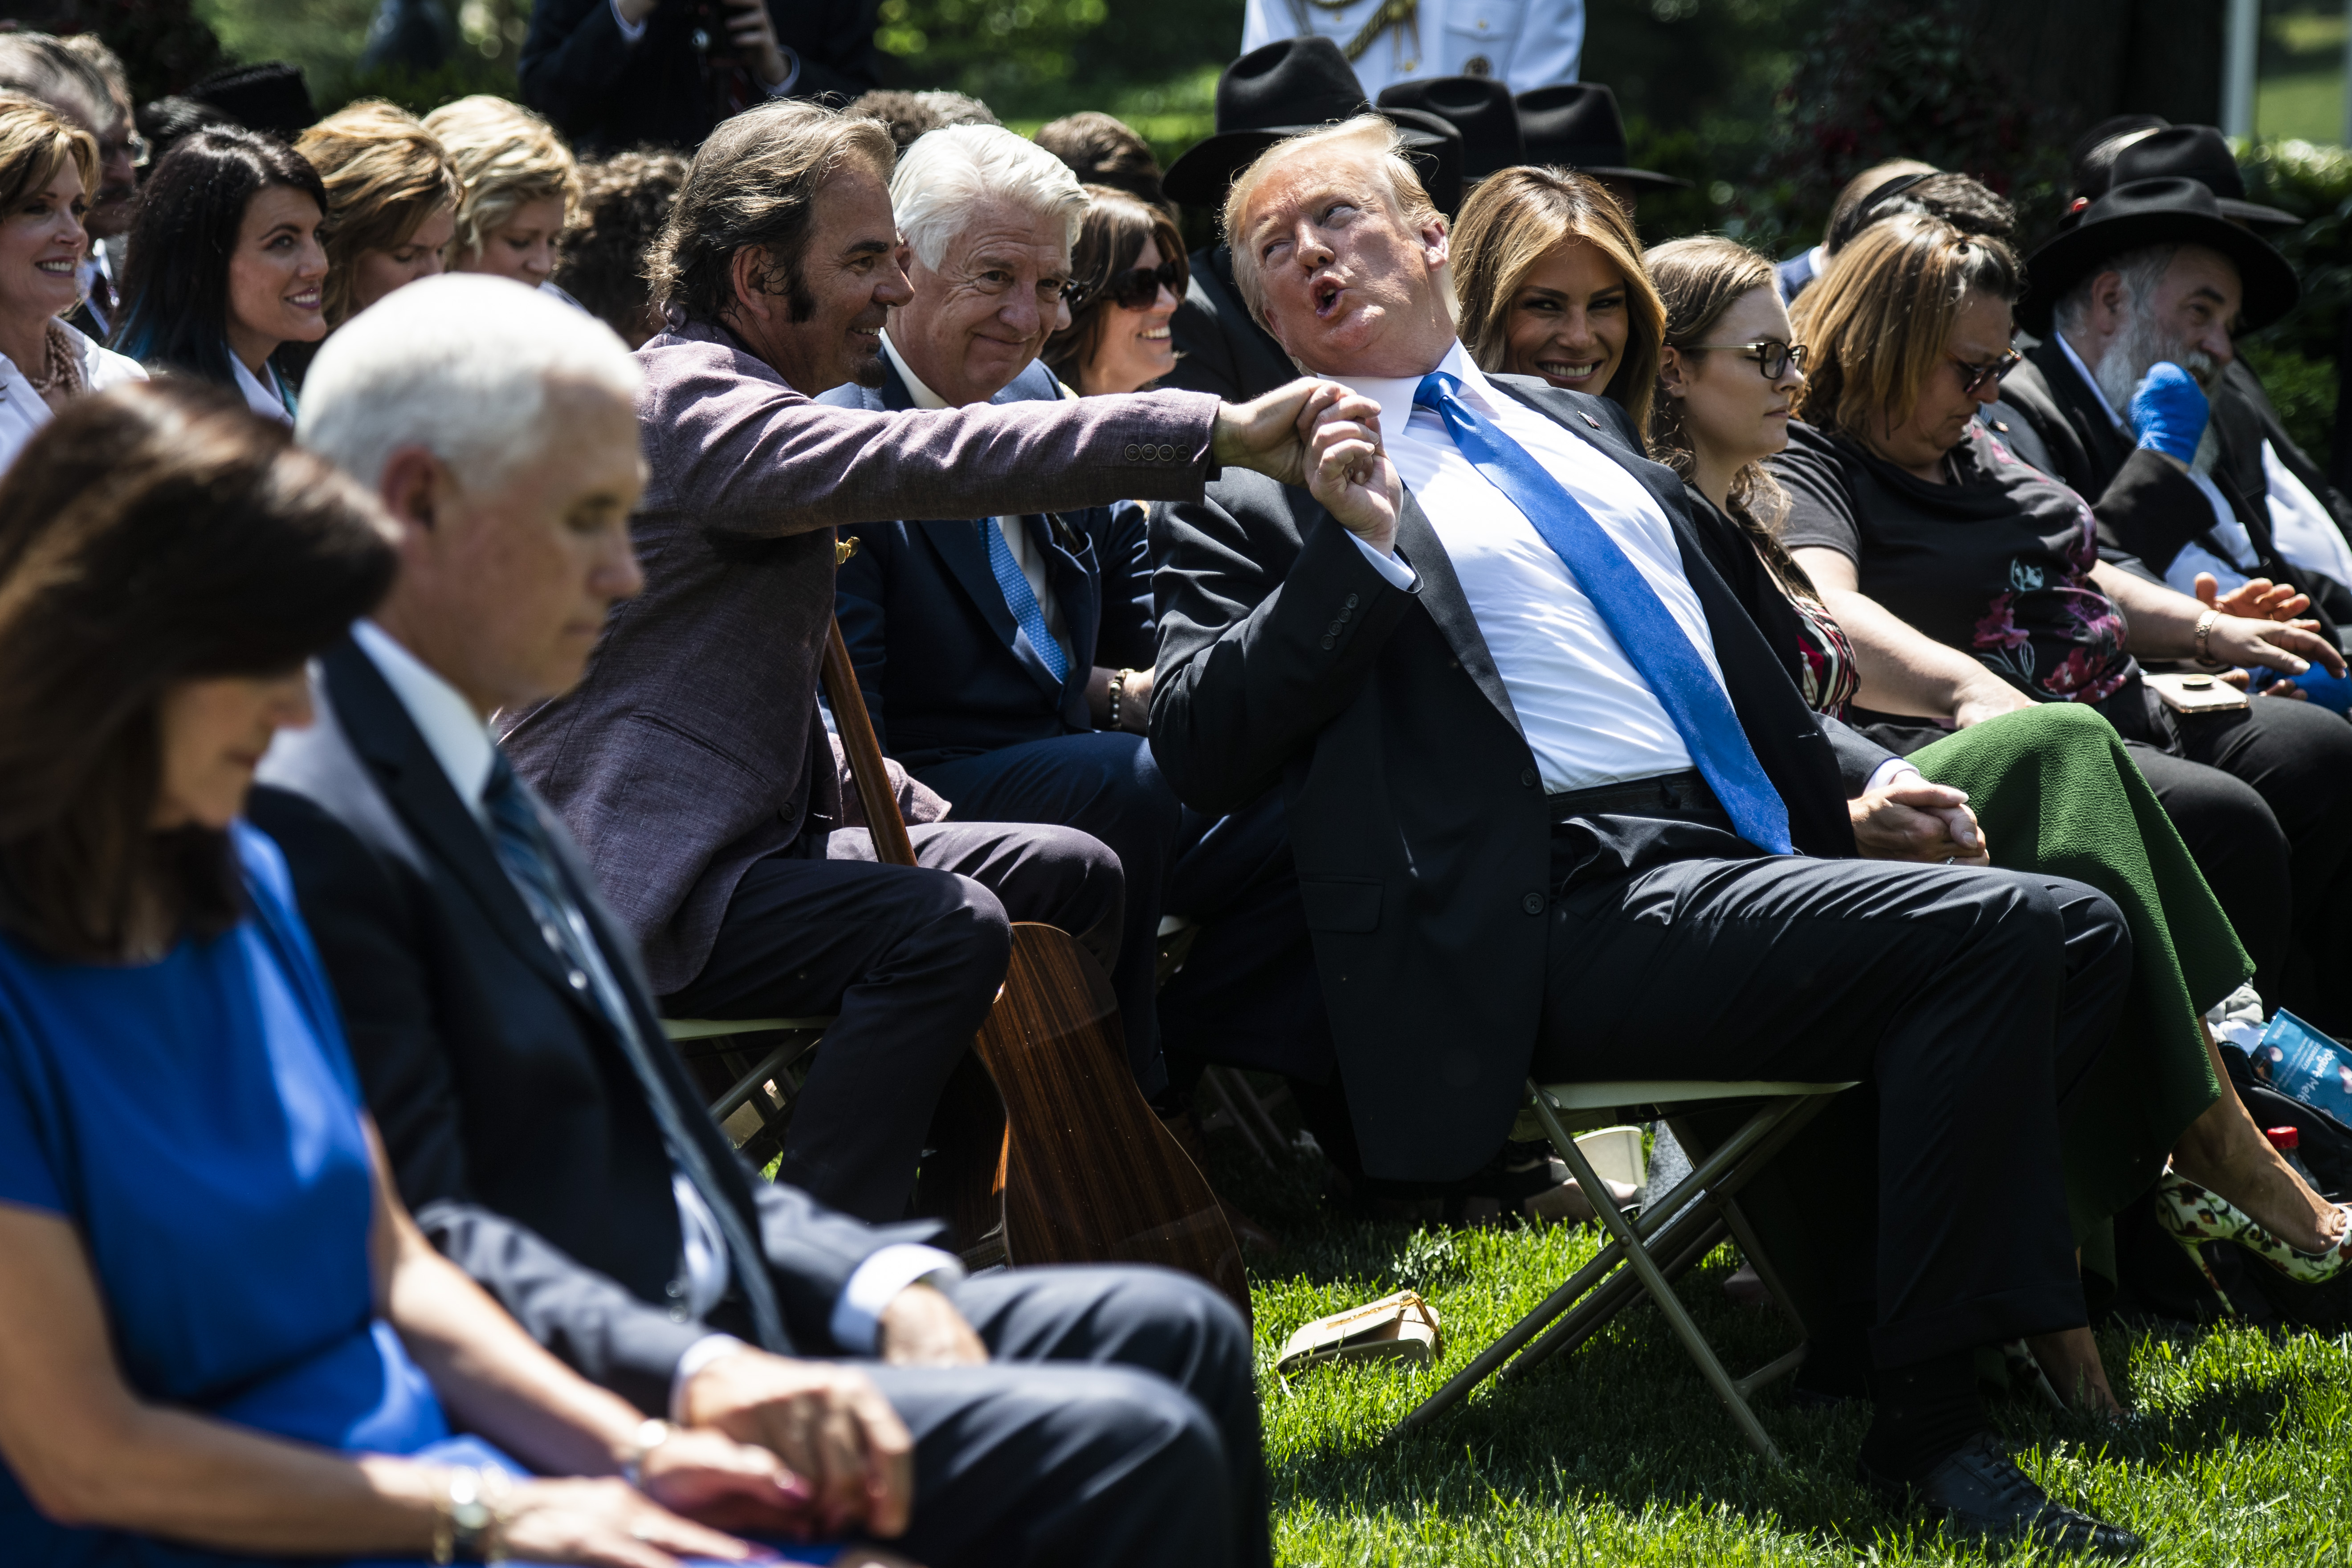 How do you get through that whole stuff?': Donald Trump leads a